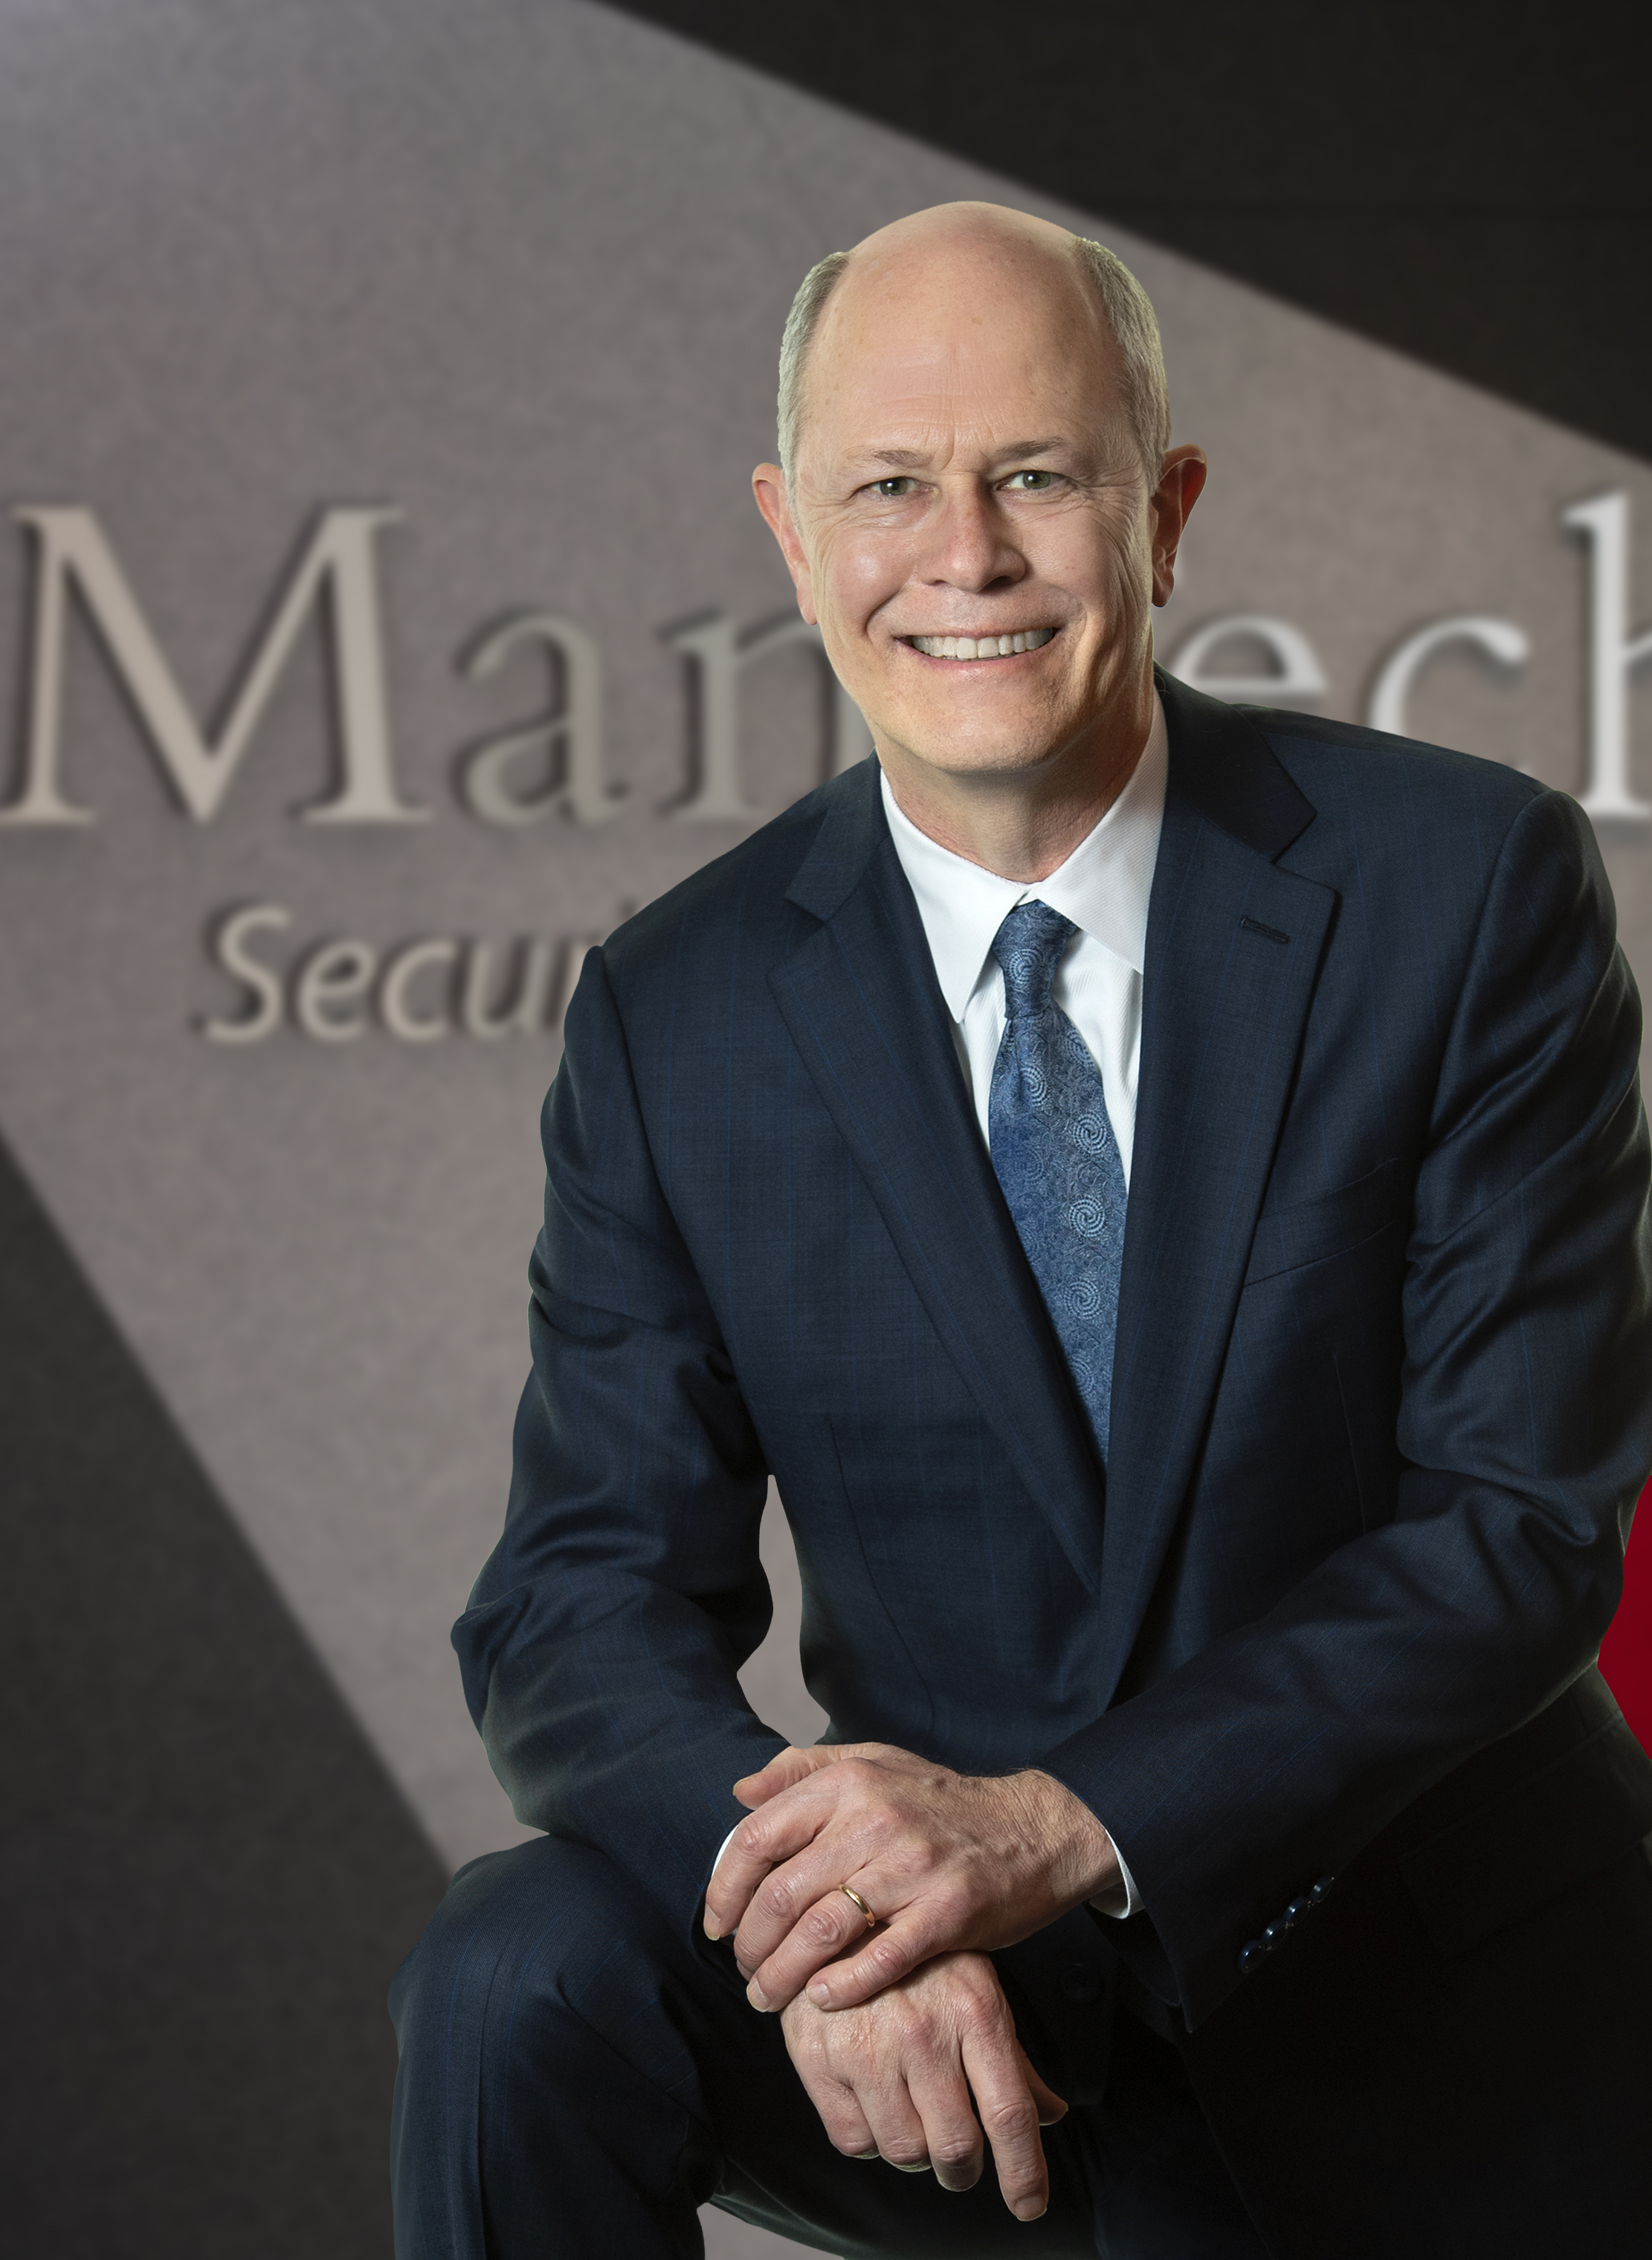 Kevin M. Phillips, Chairman, CEO and President, ManTech